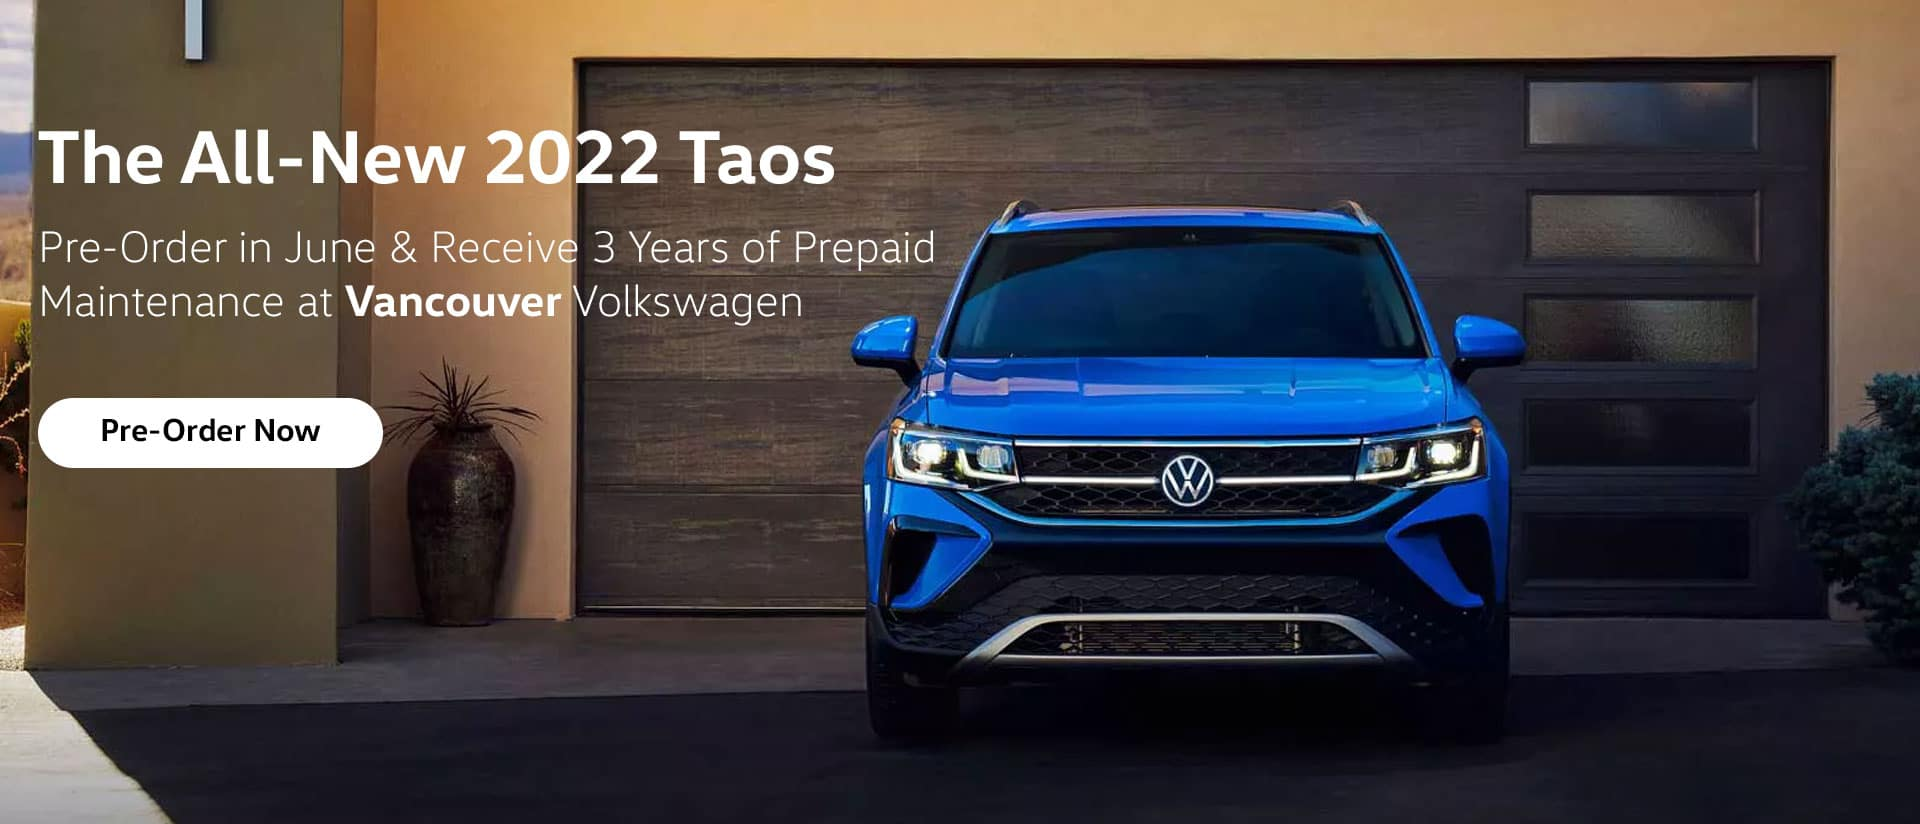 The All-New 2022 Taos. Pre-Order & Receive 3 Years of Prepaid Maintenance at Vancouver Volkswagen